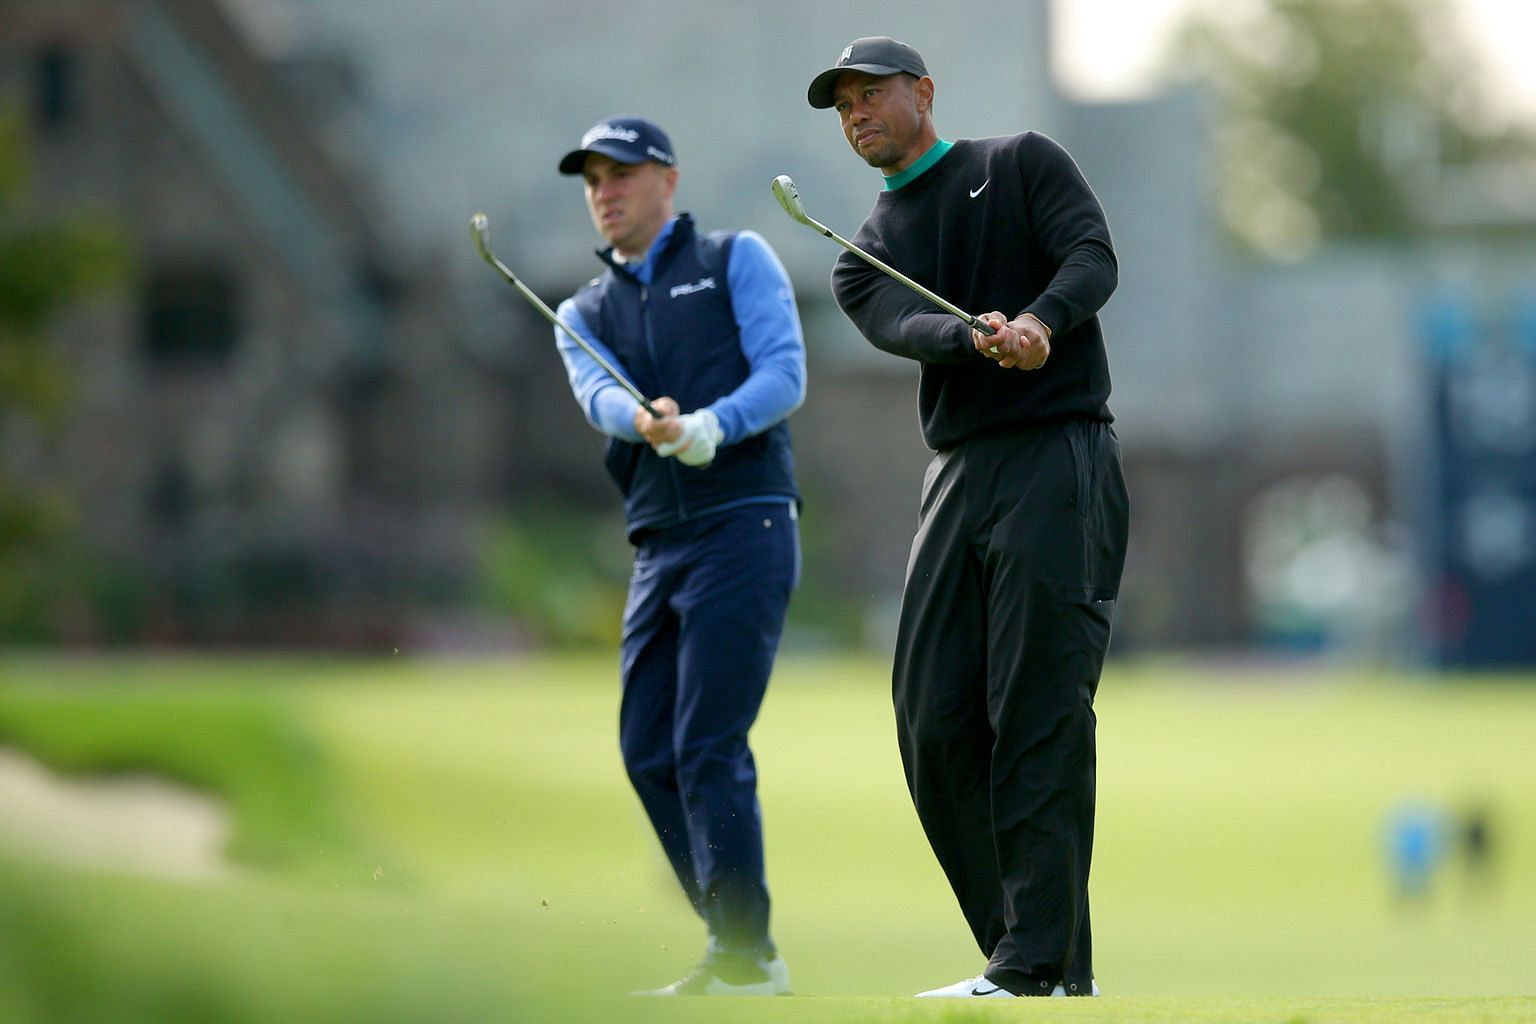 Having experienced a missed cut at Winged Foot during the 2006 US Open, Tiger Woods knows how hard the course is. PHOTO: REUTERS